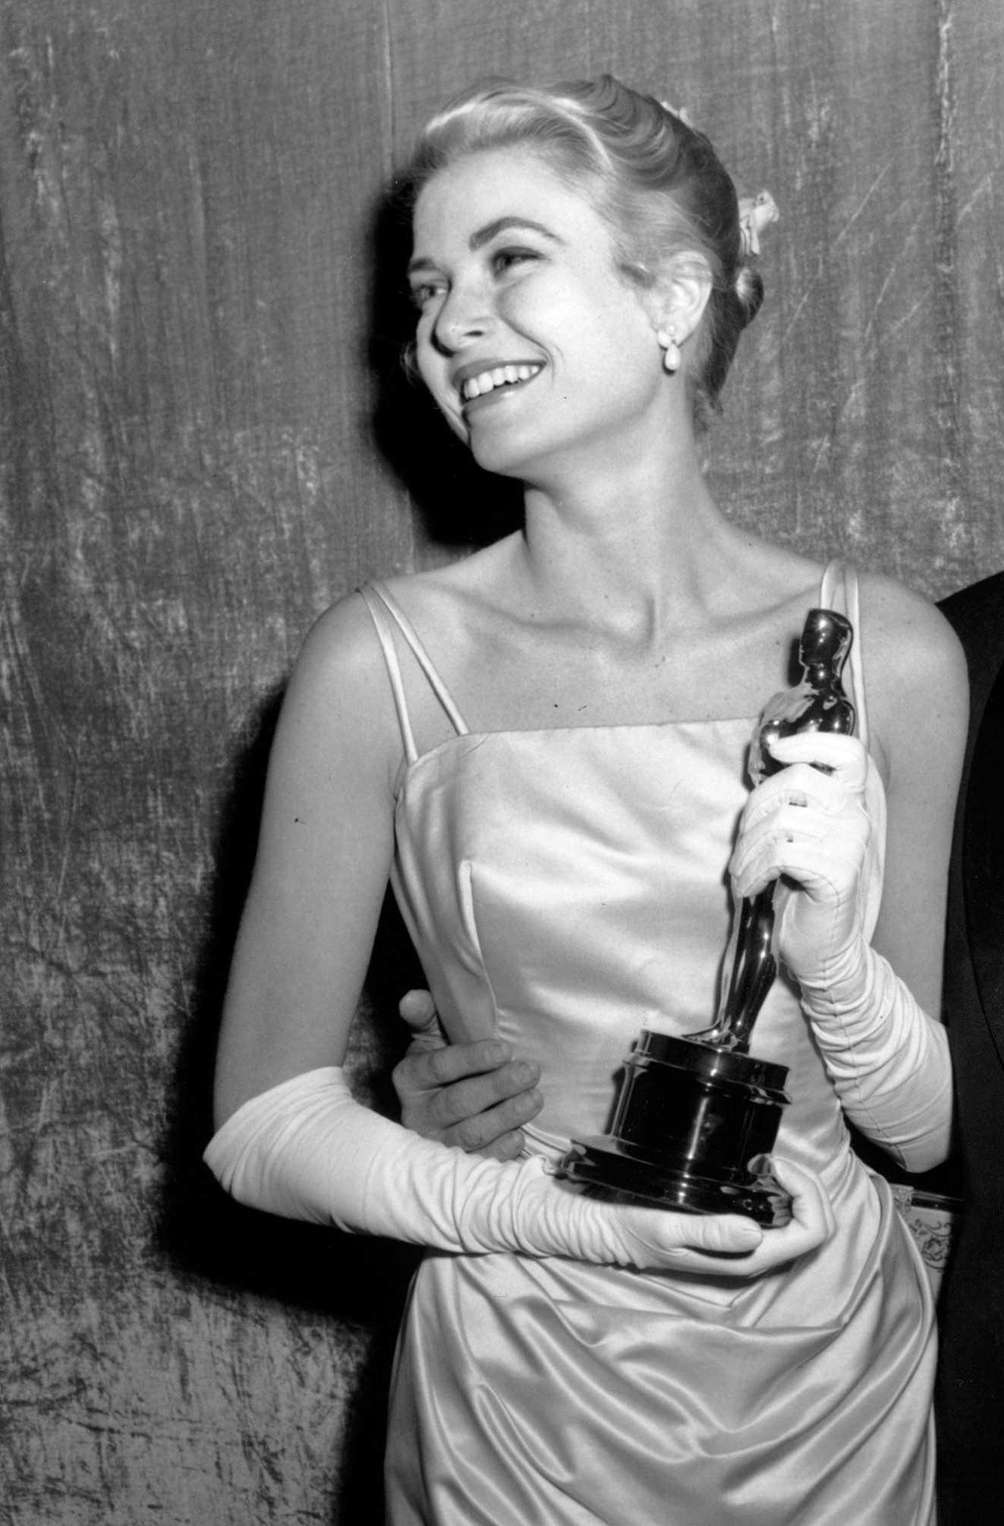 1954 - Grace Kelly - The Country Girl